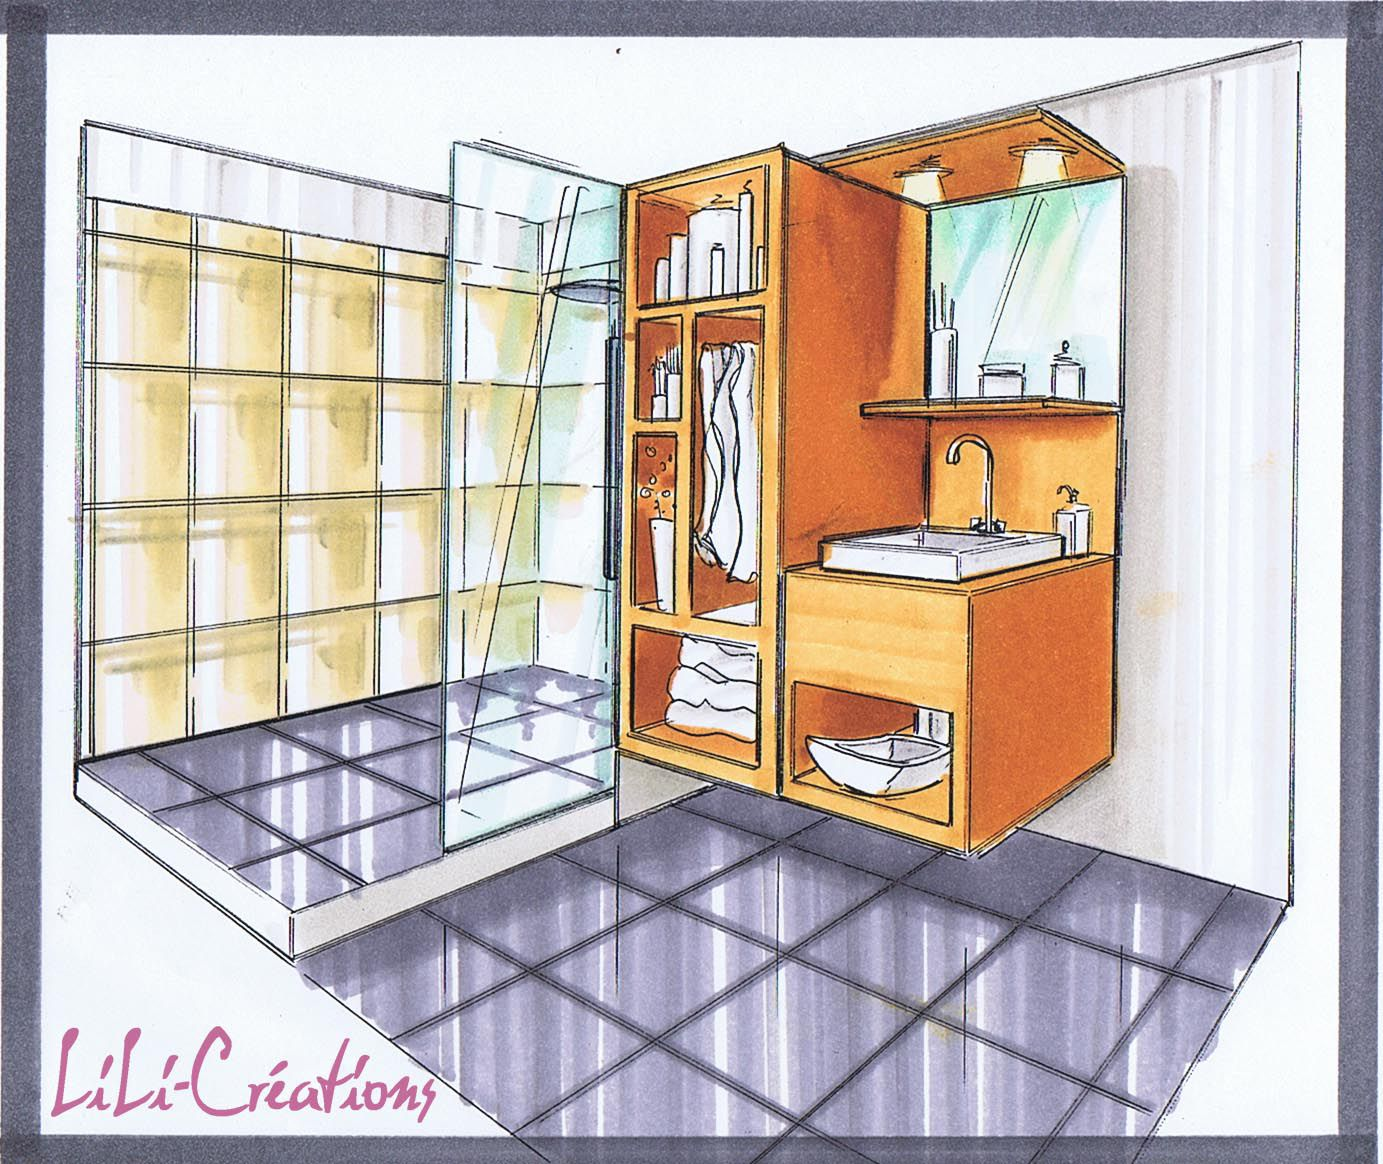 Le blog de elise fossoux d coration architecture d for Plan de douche a l italienne